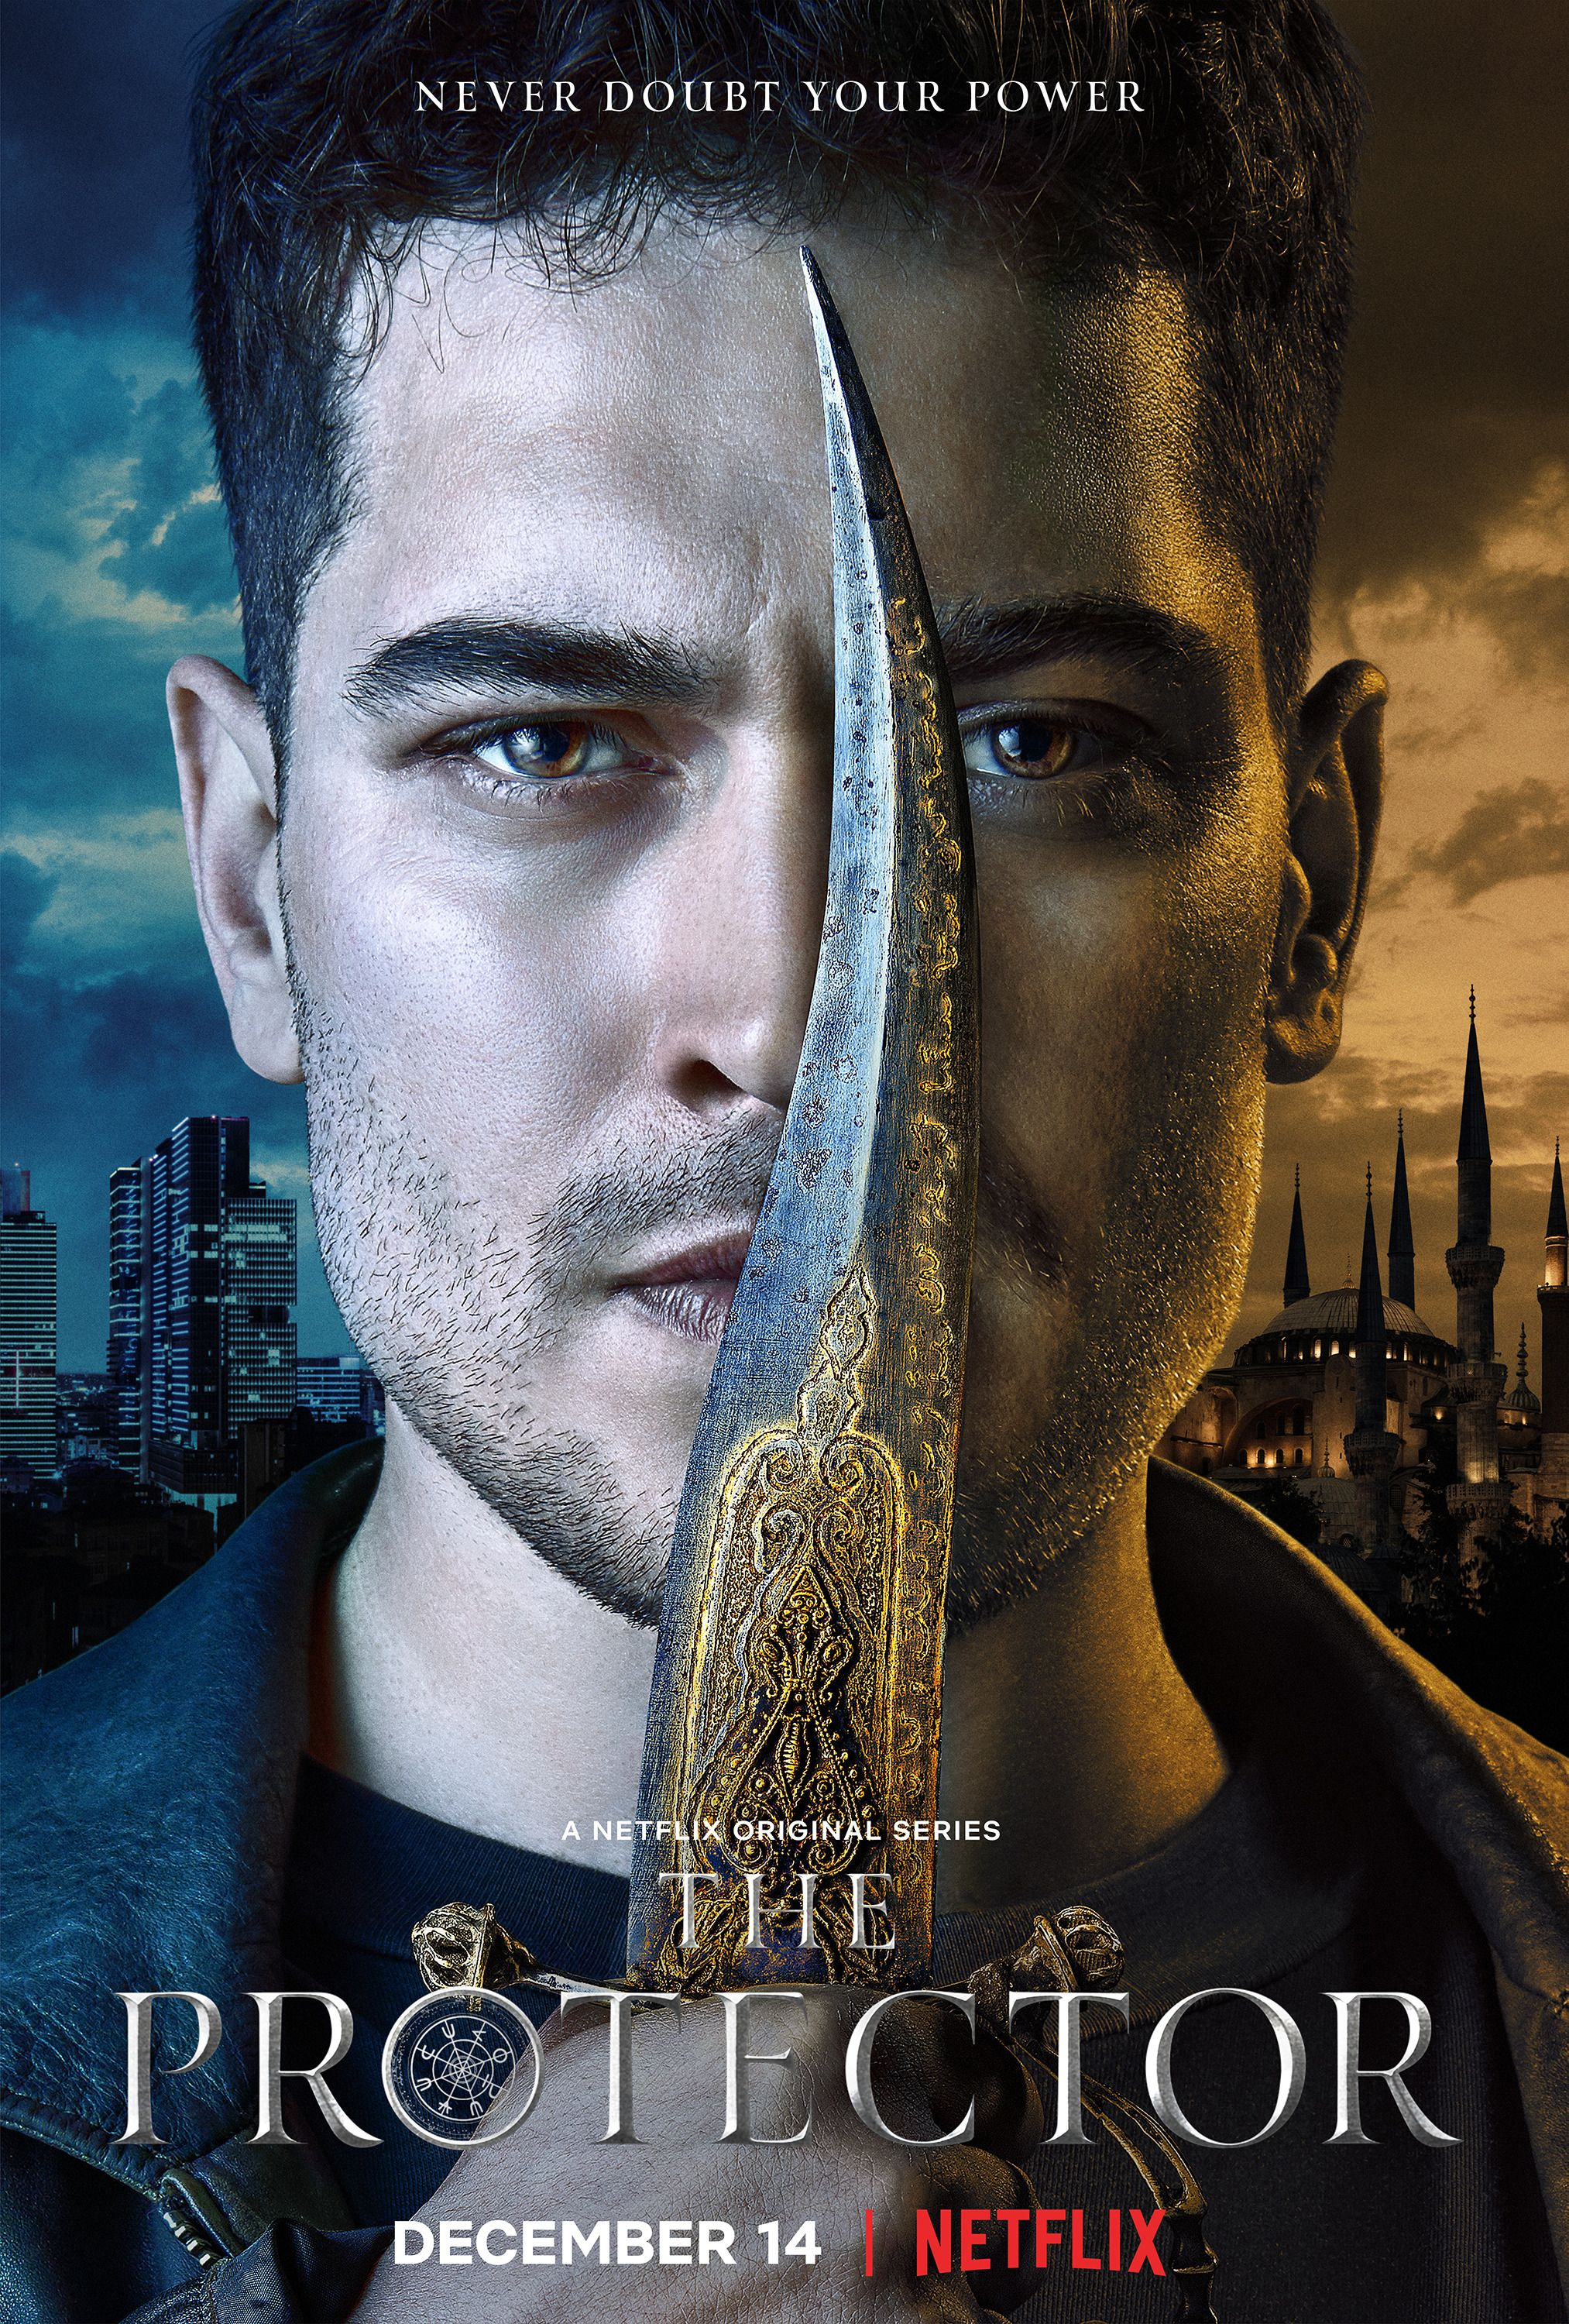 Return to the main poster page for The Protector Netflix